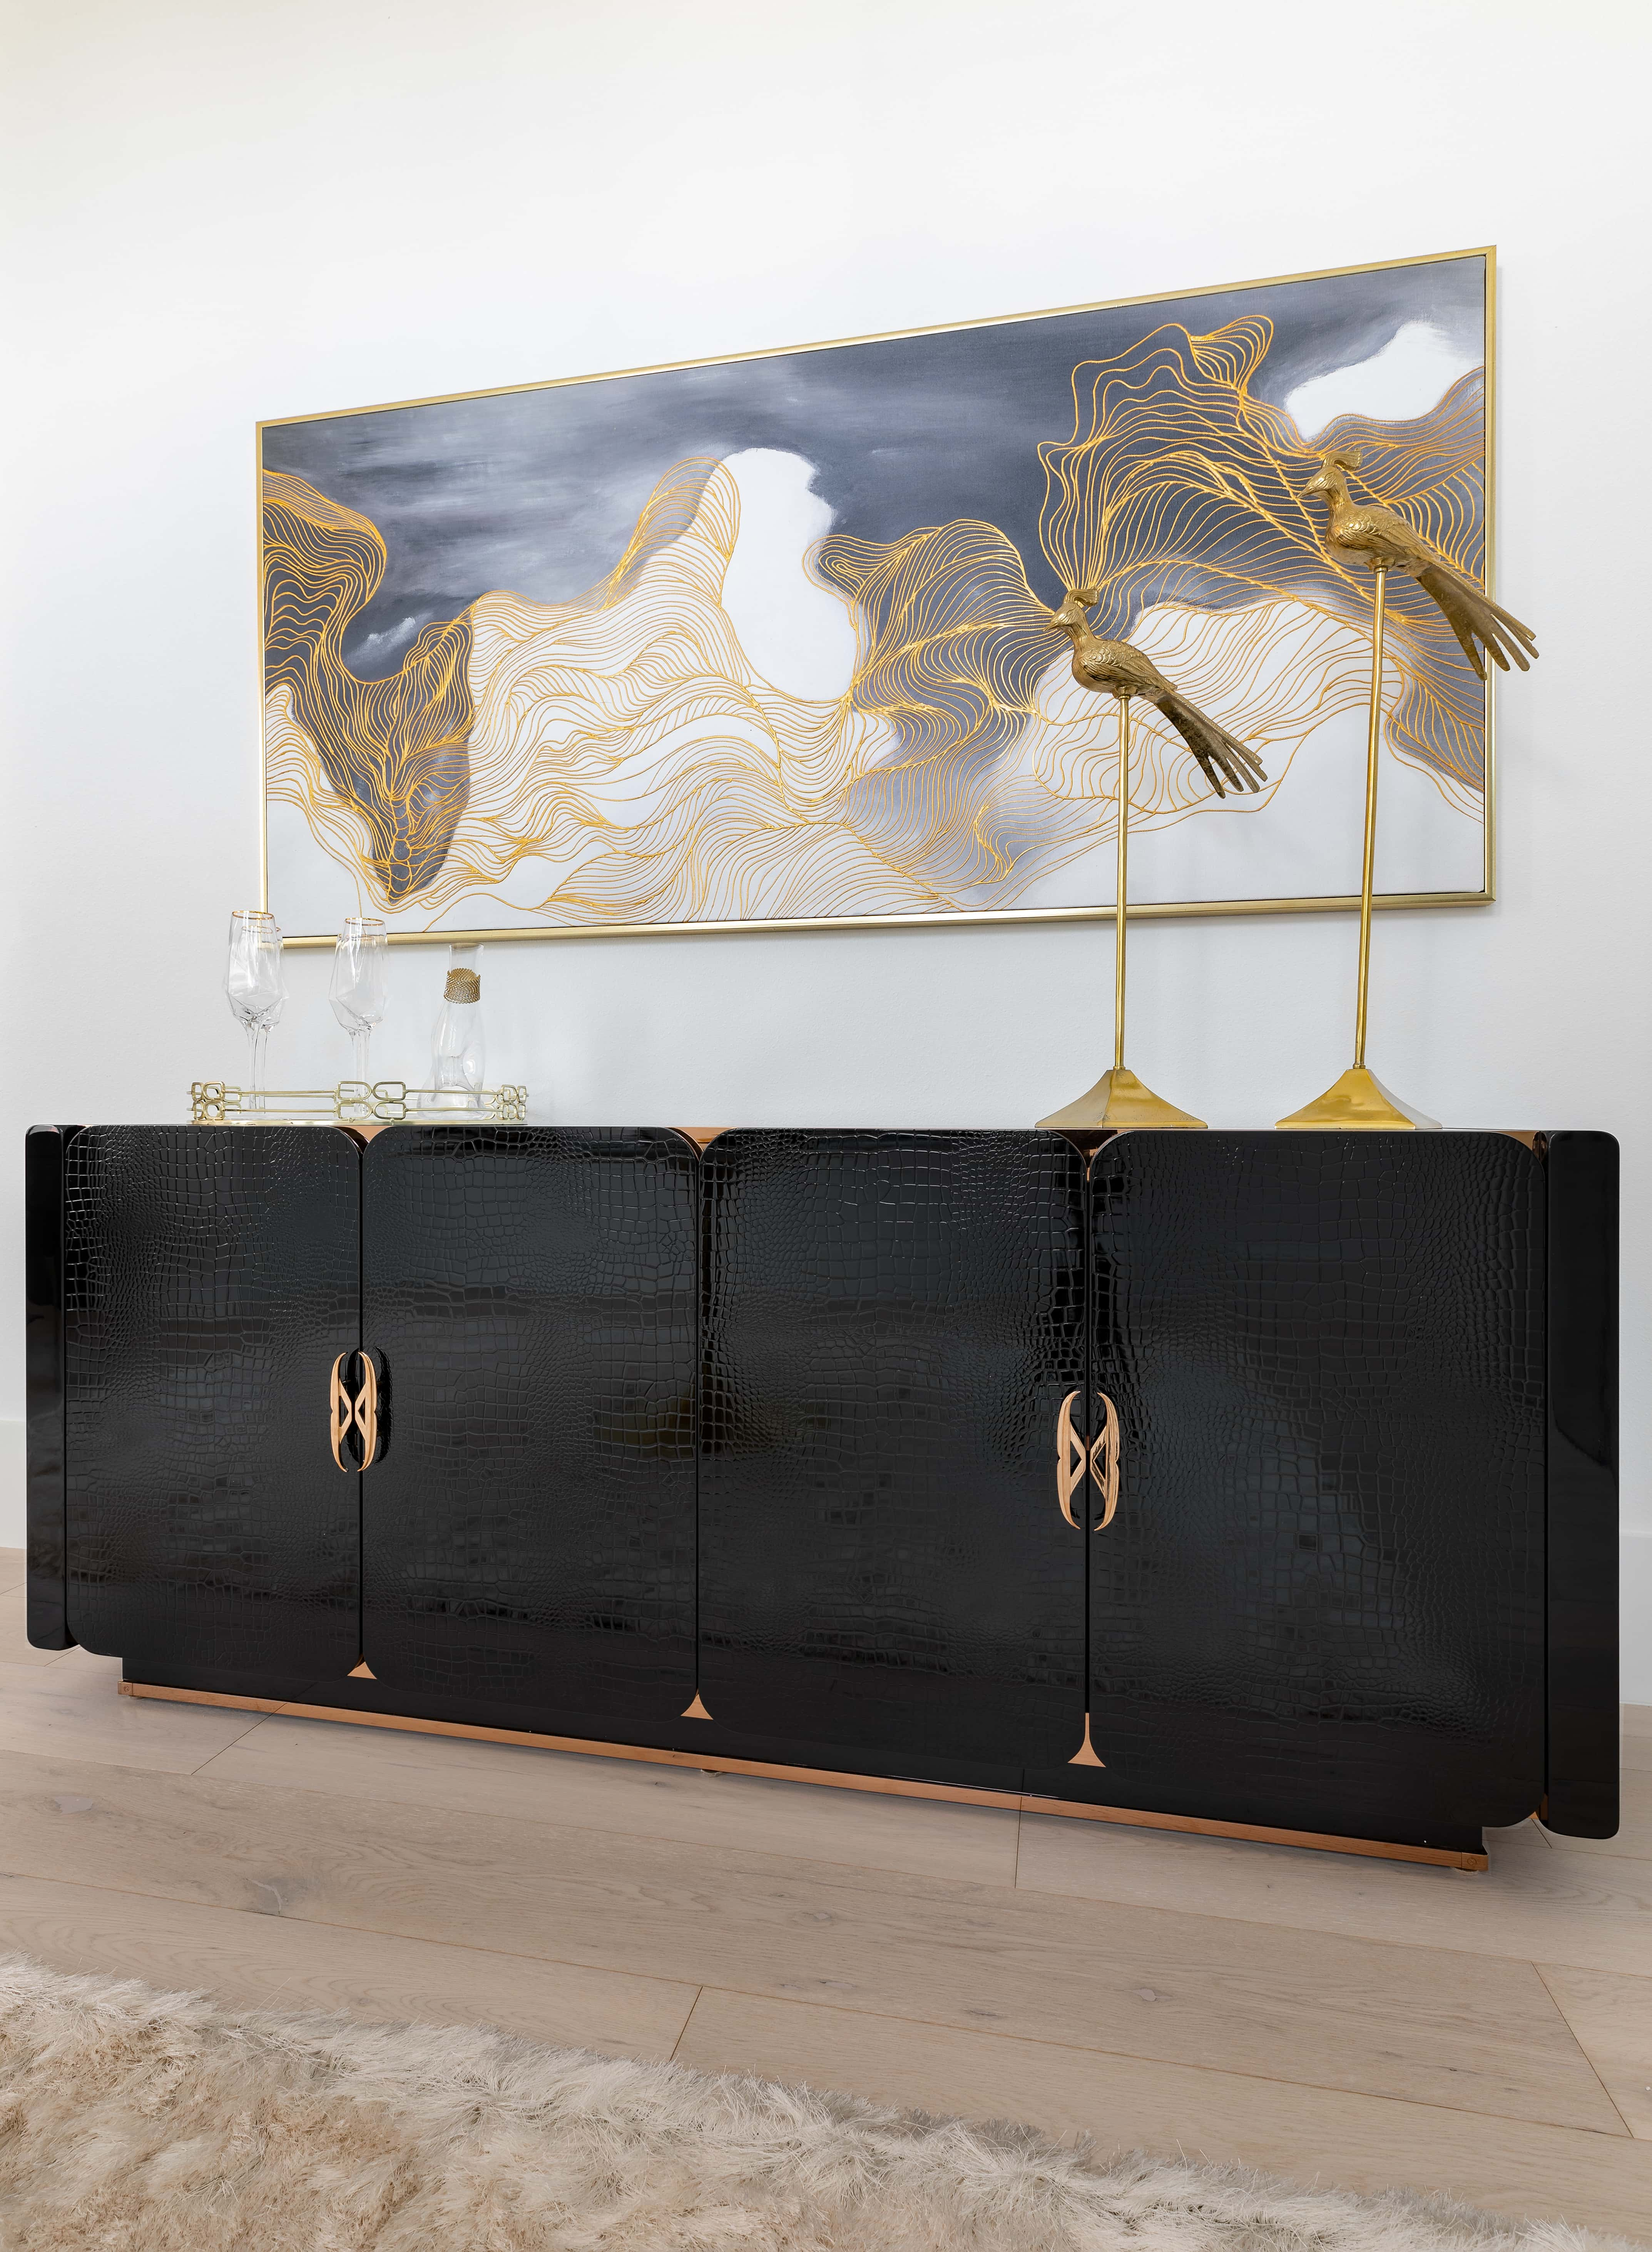 cabinets and art